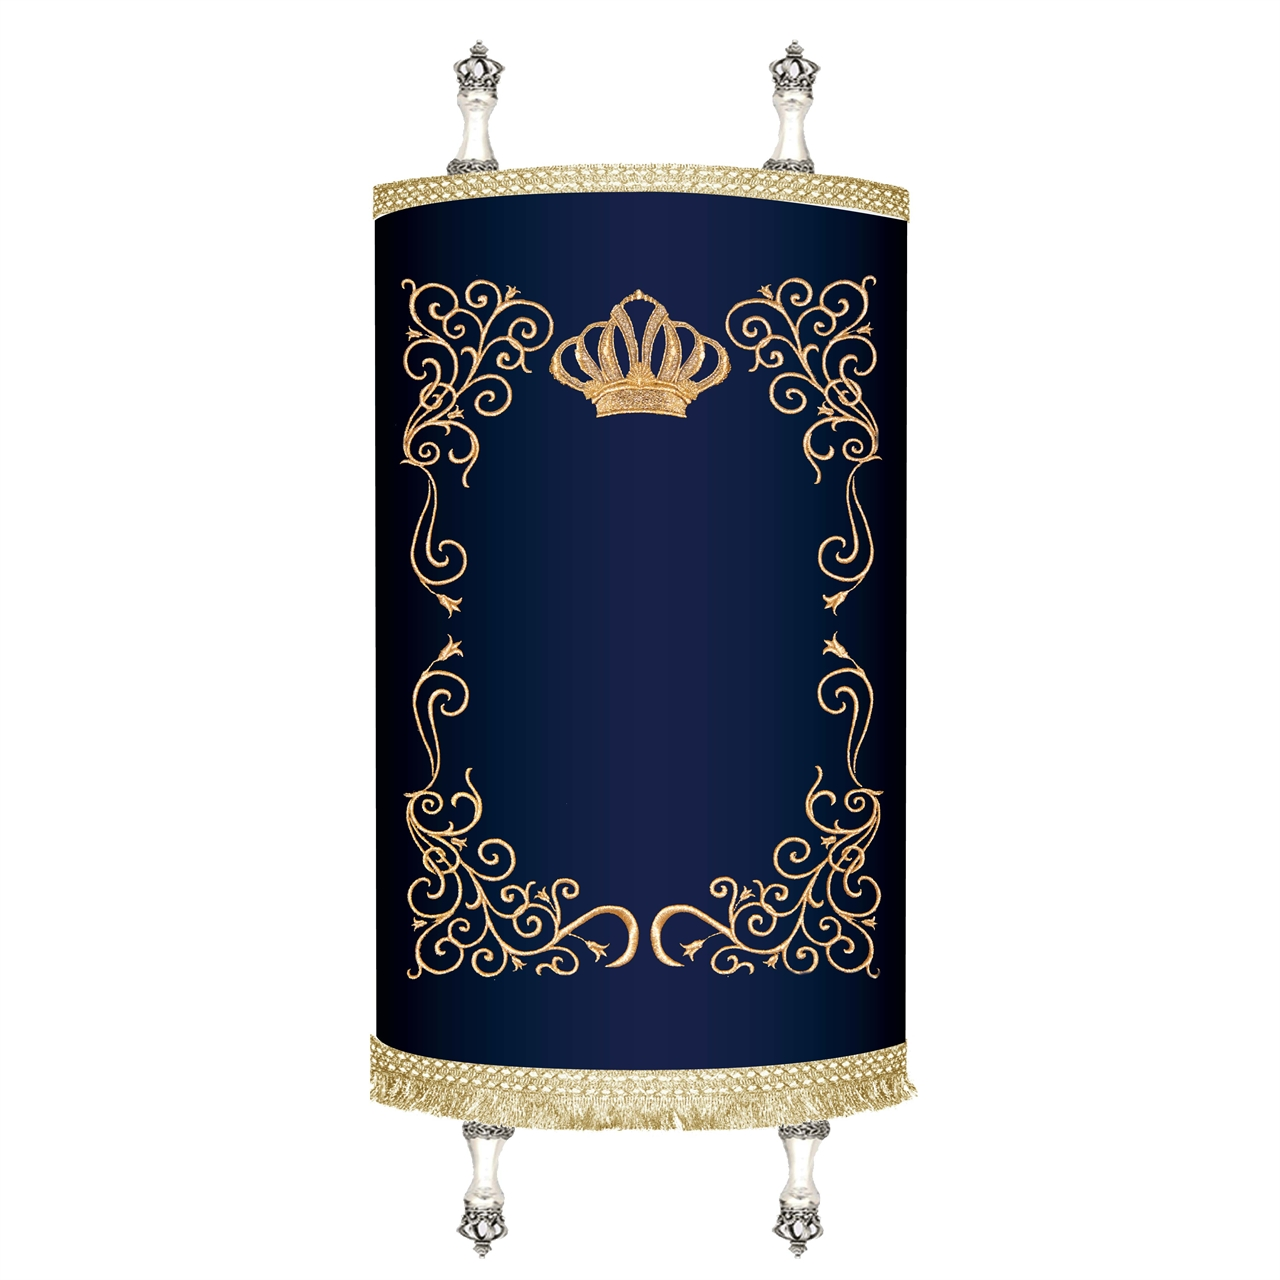 Torah Cover -  Decorative Frame